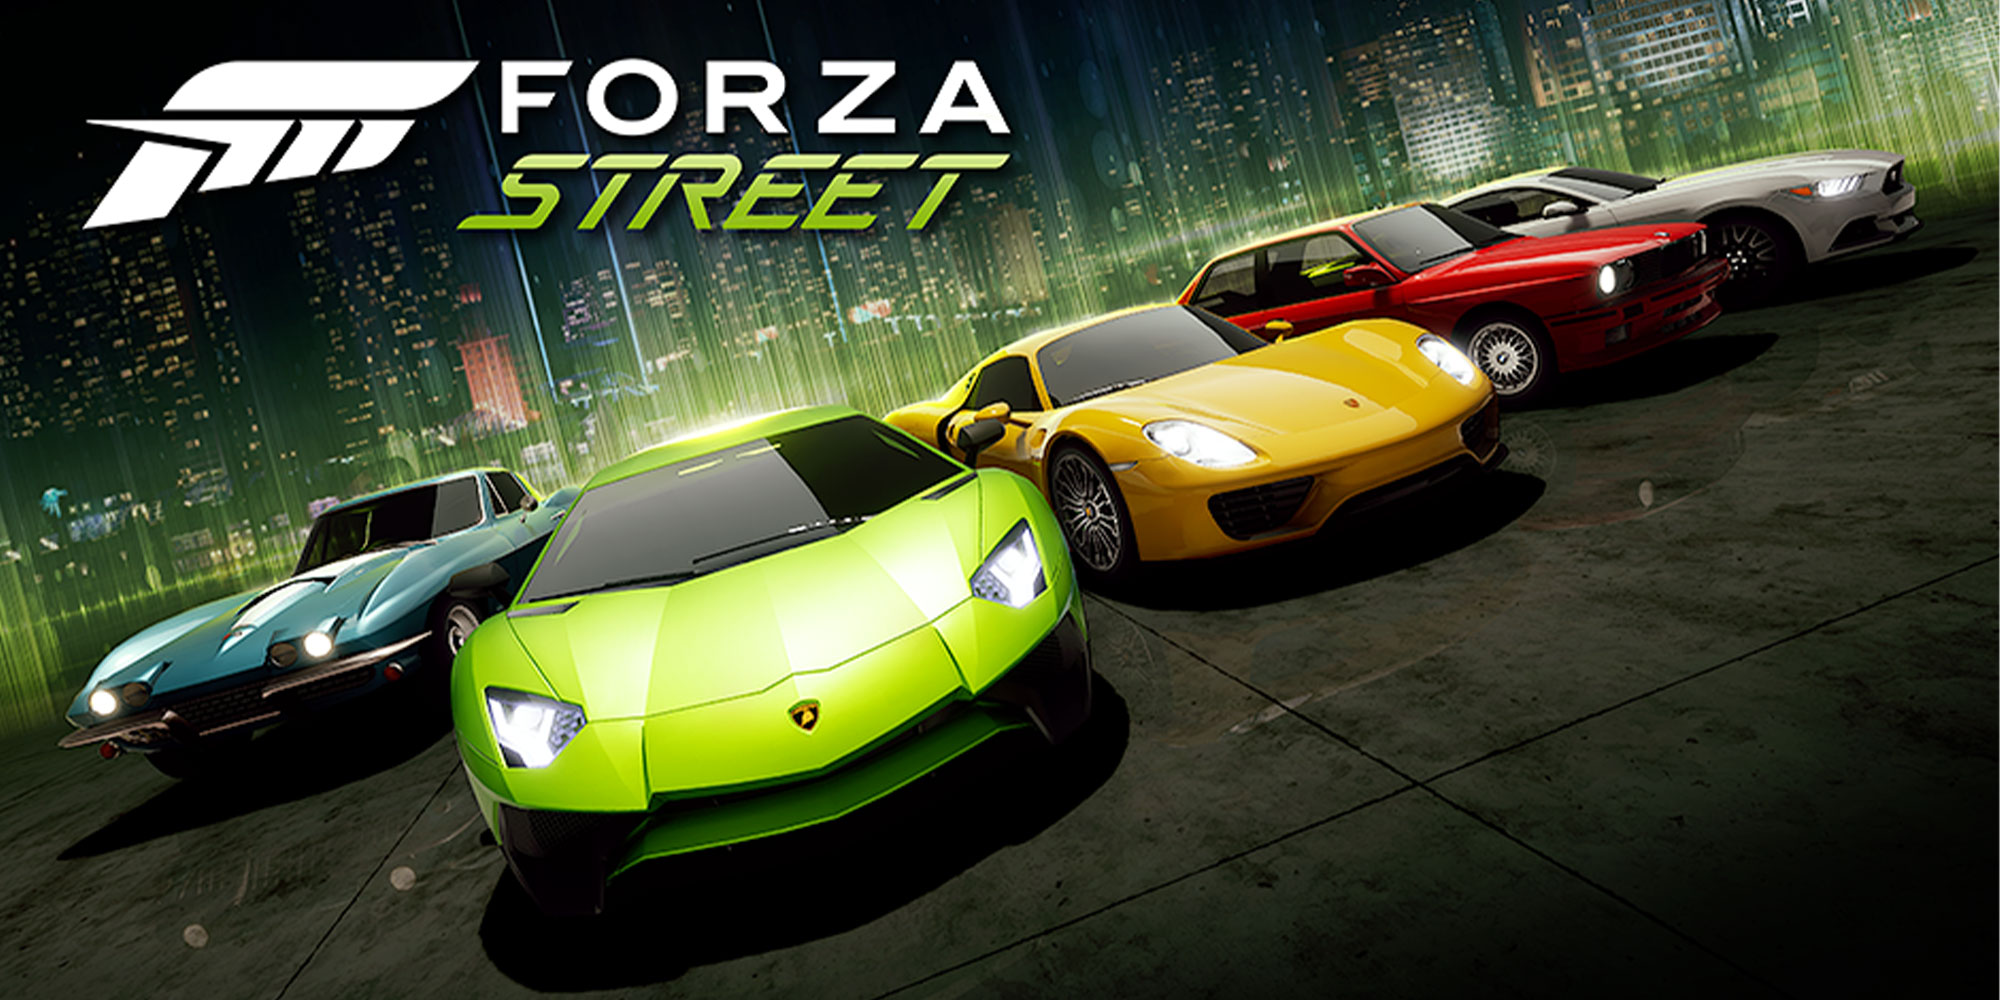 Racing fans rejoice: Forza Street coming to Android and iOS this year, now available for Windows 10